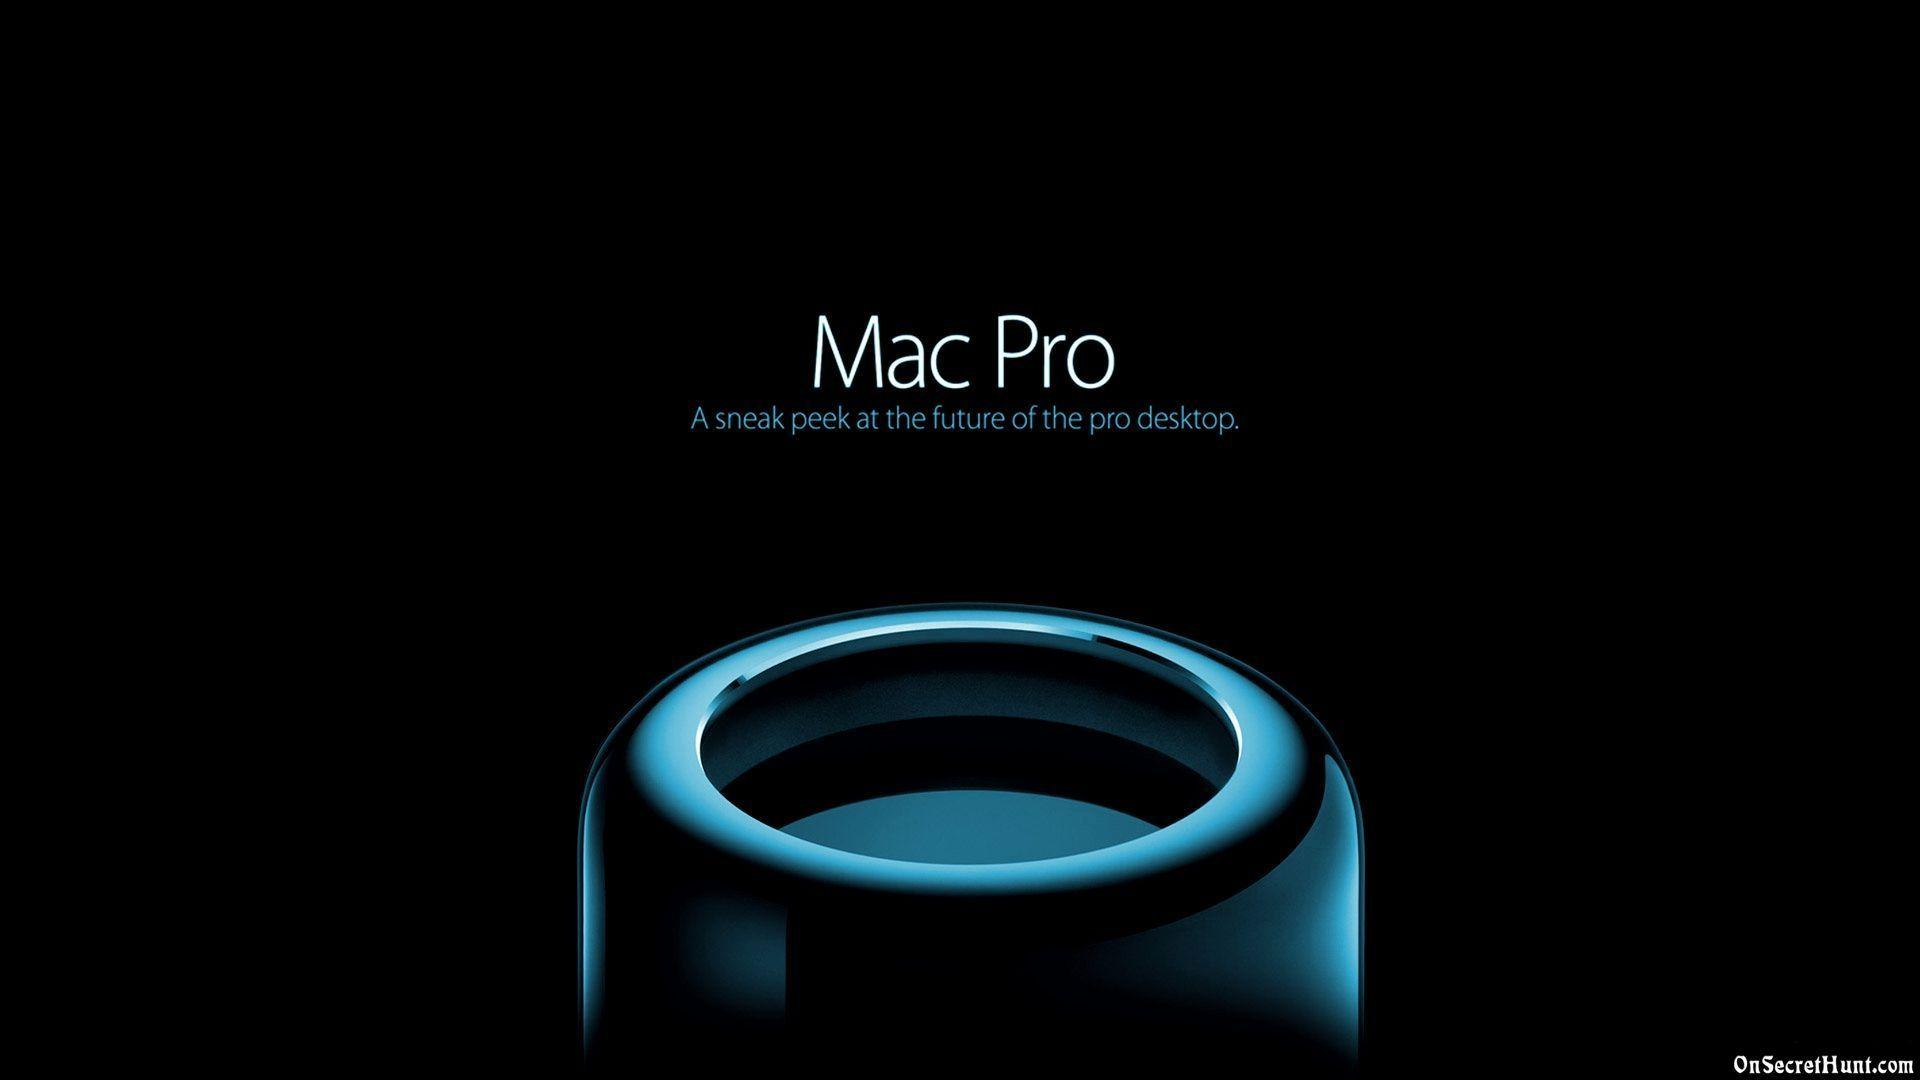 Mac Pro Backgrounds 1920x1080